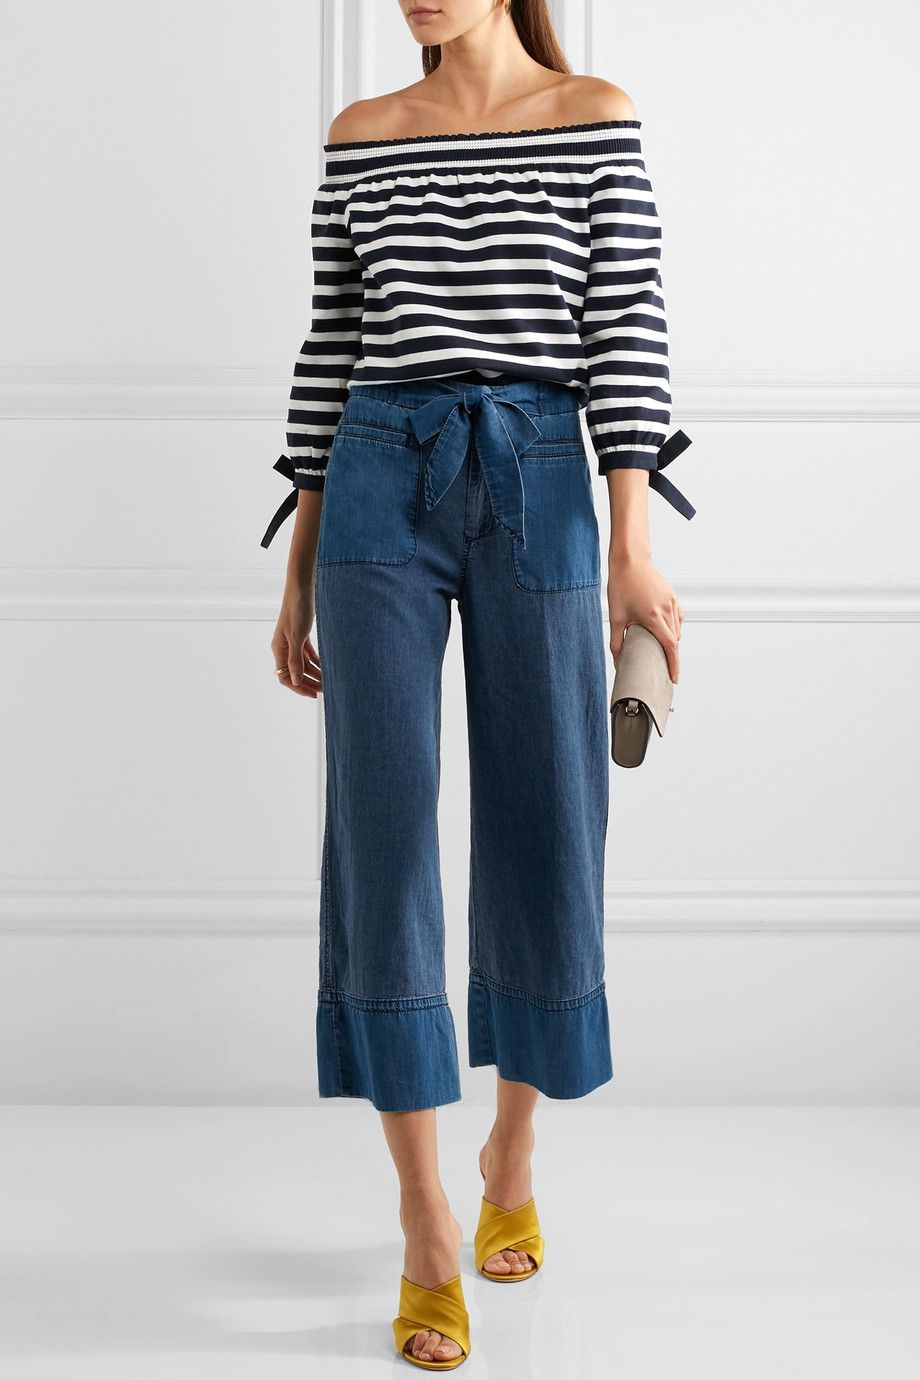 Off-the-Shoulder Stripe Top and Wide Leg Jeans